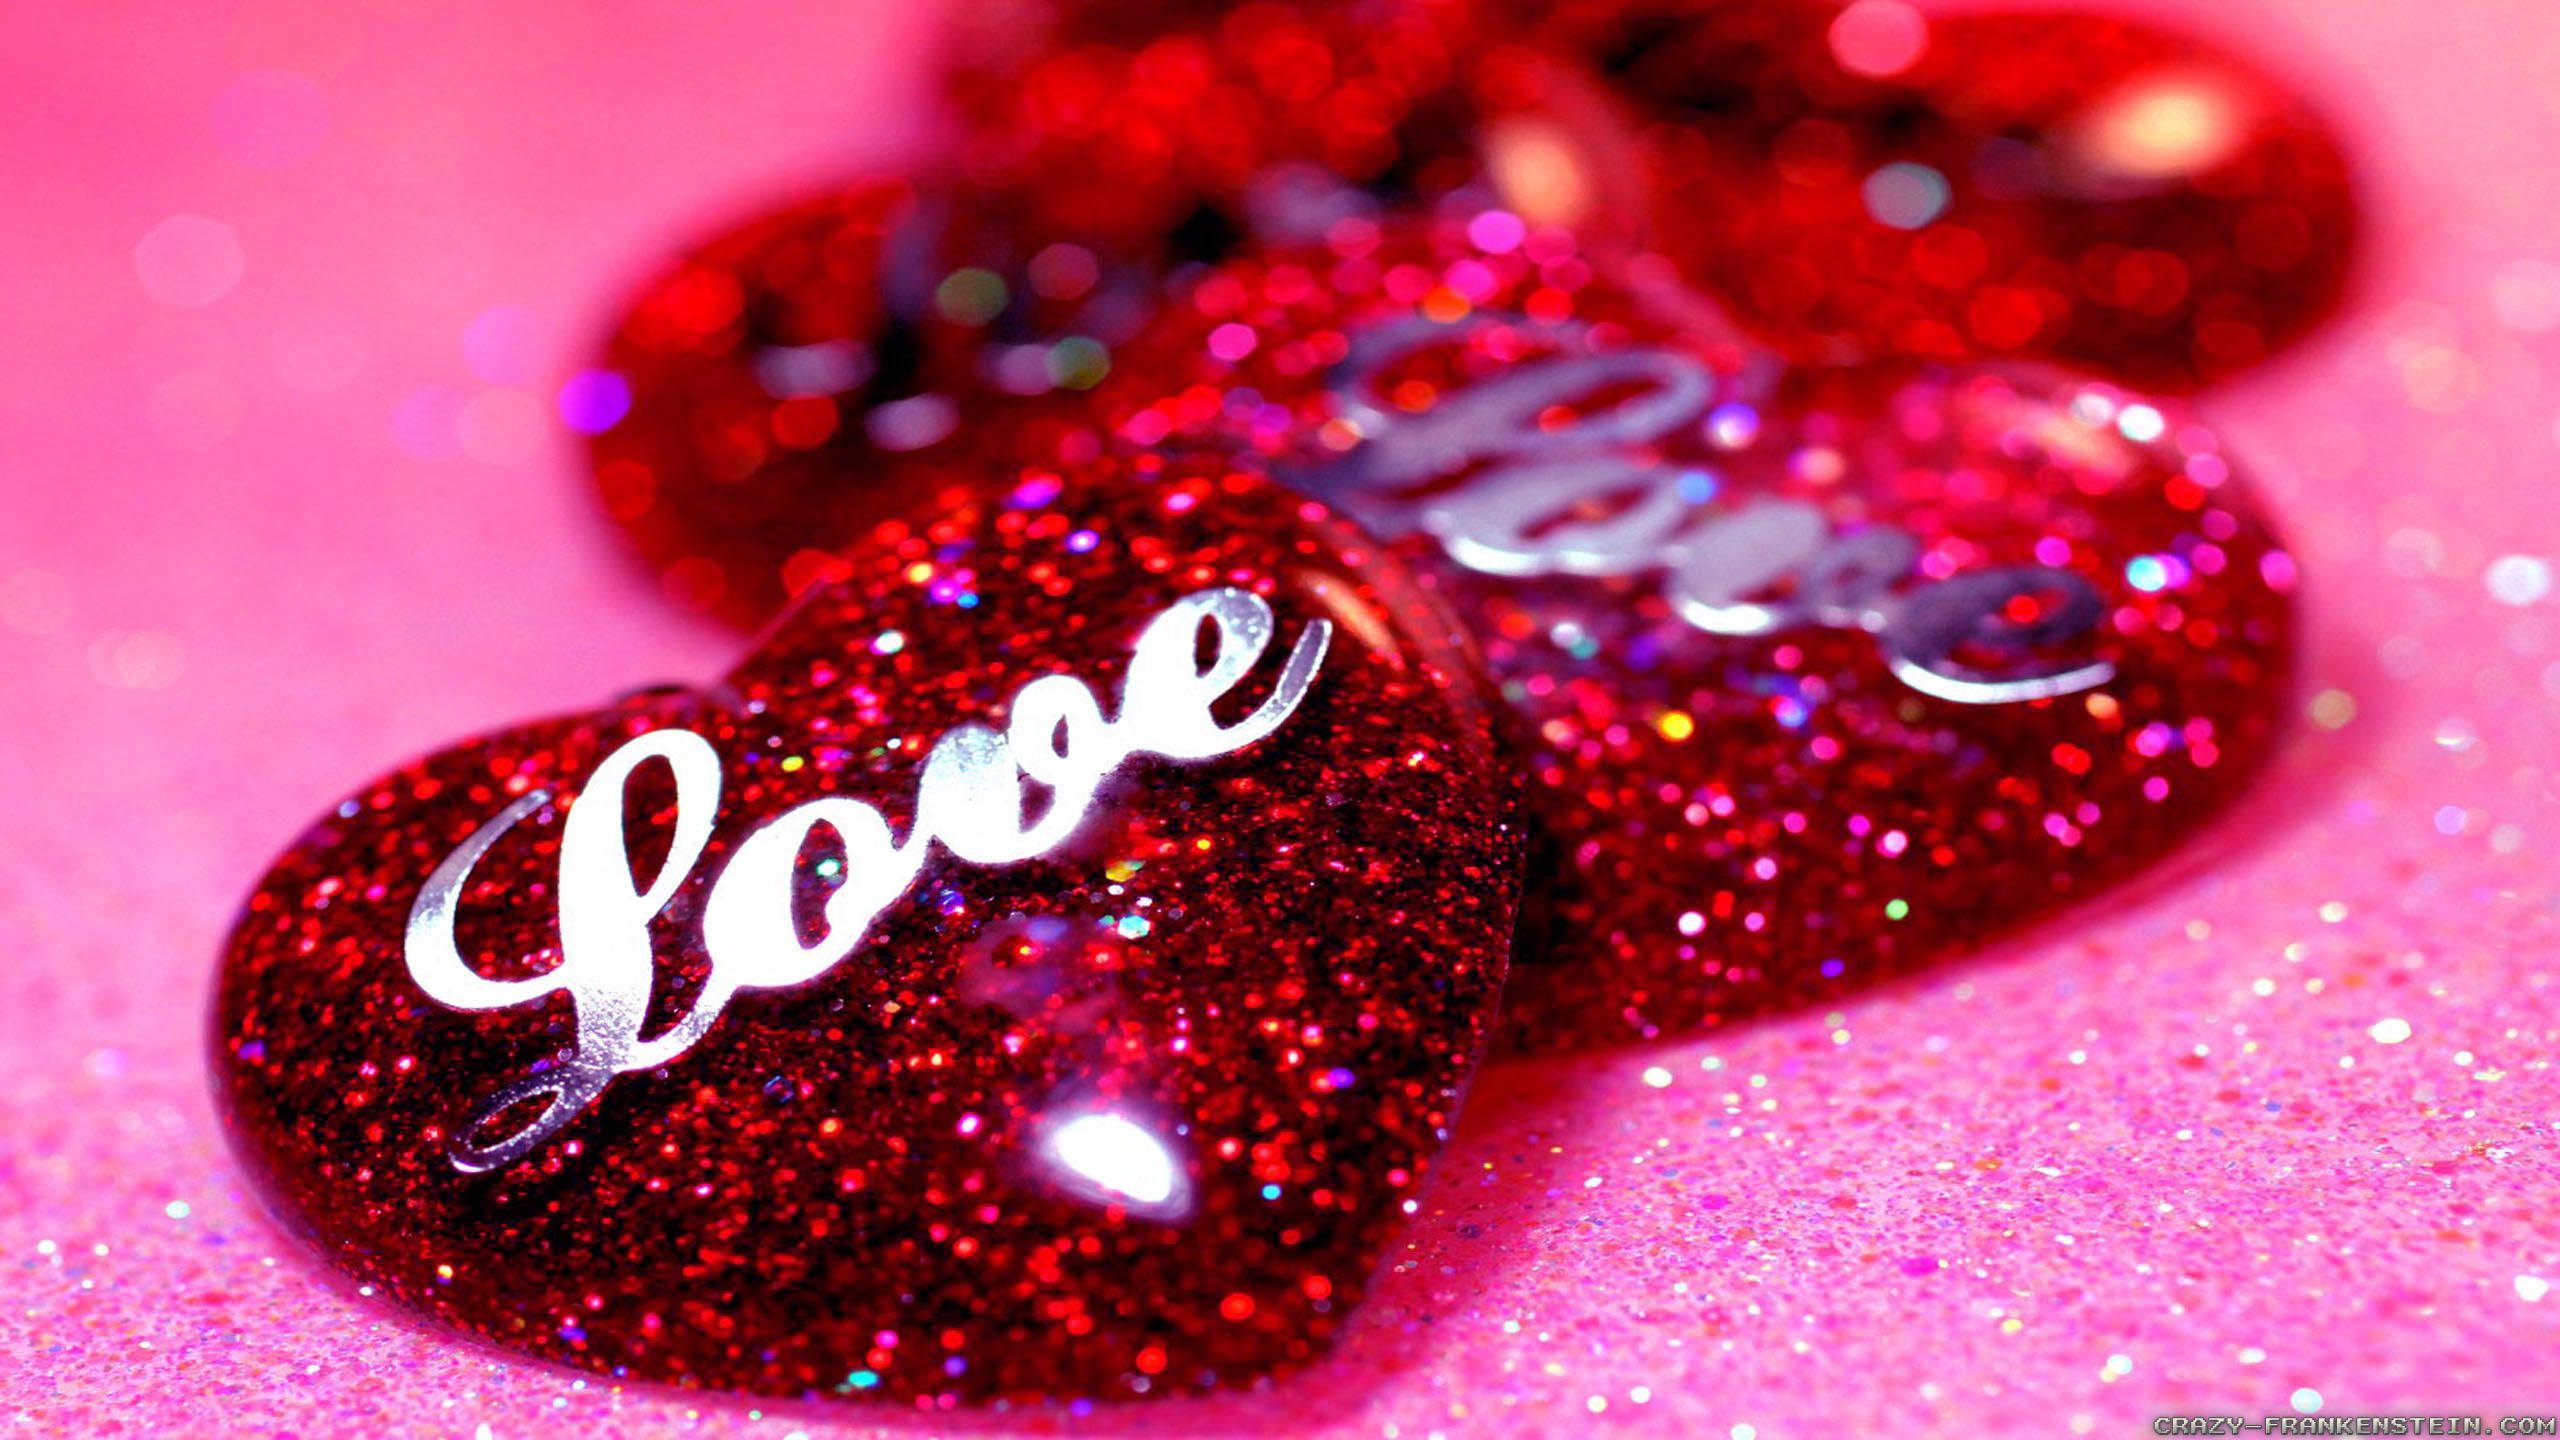 Best 3d Love Mobile Wallpapers Backgronds: Download Love 3D Wallpapers For Mobile Gallery